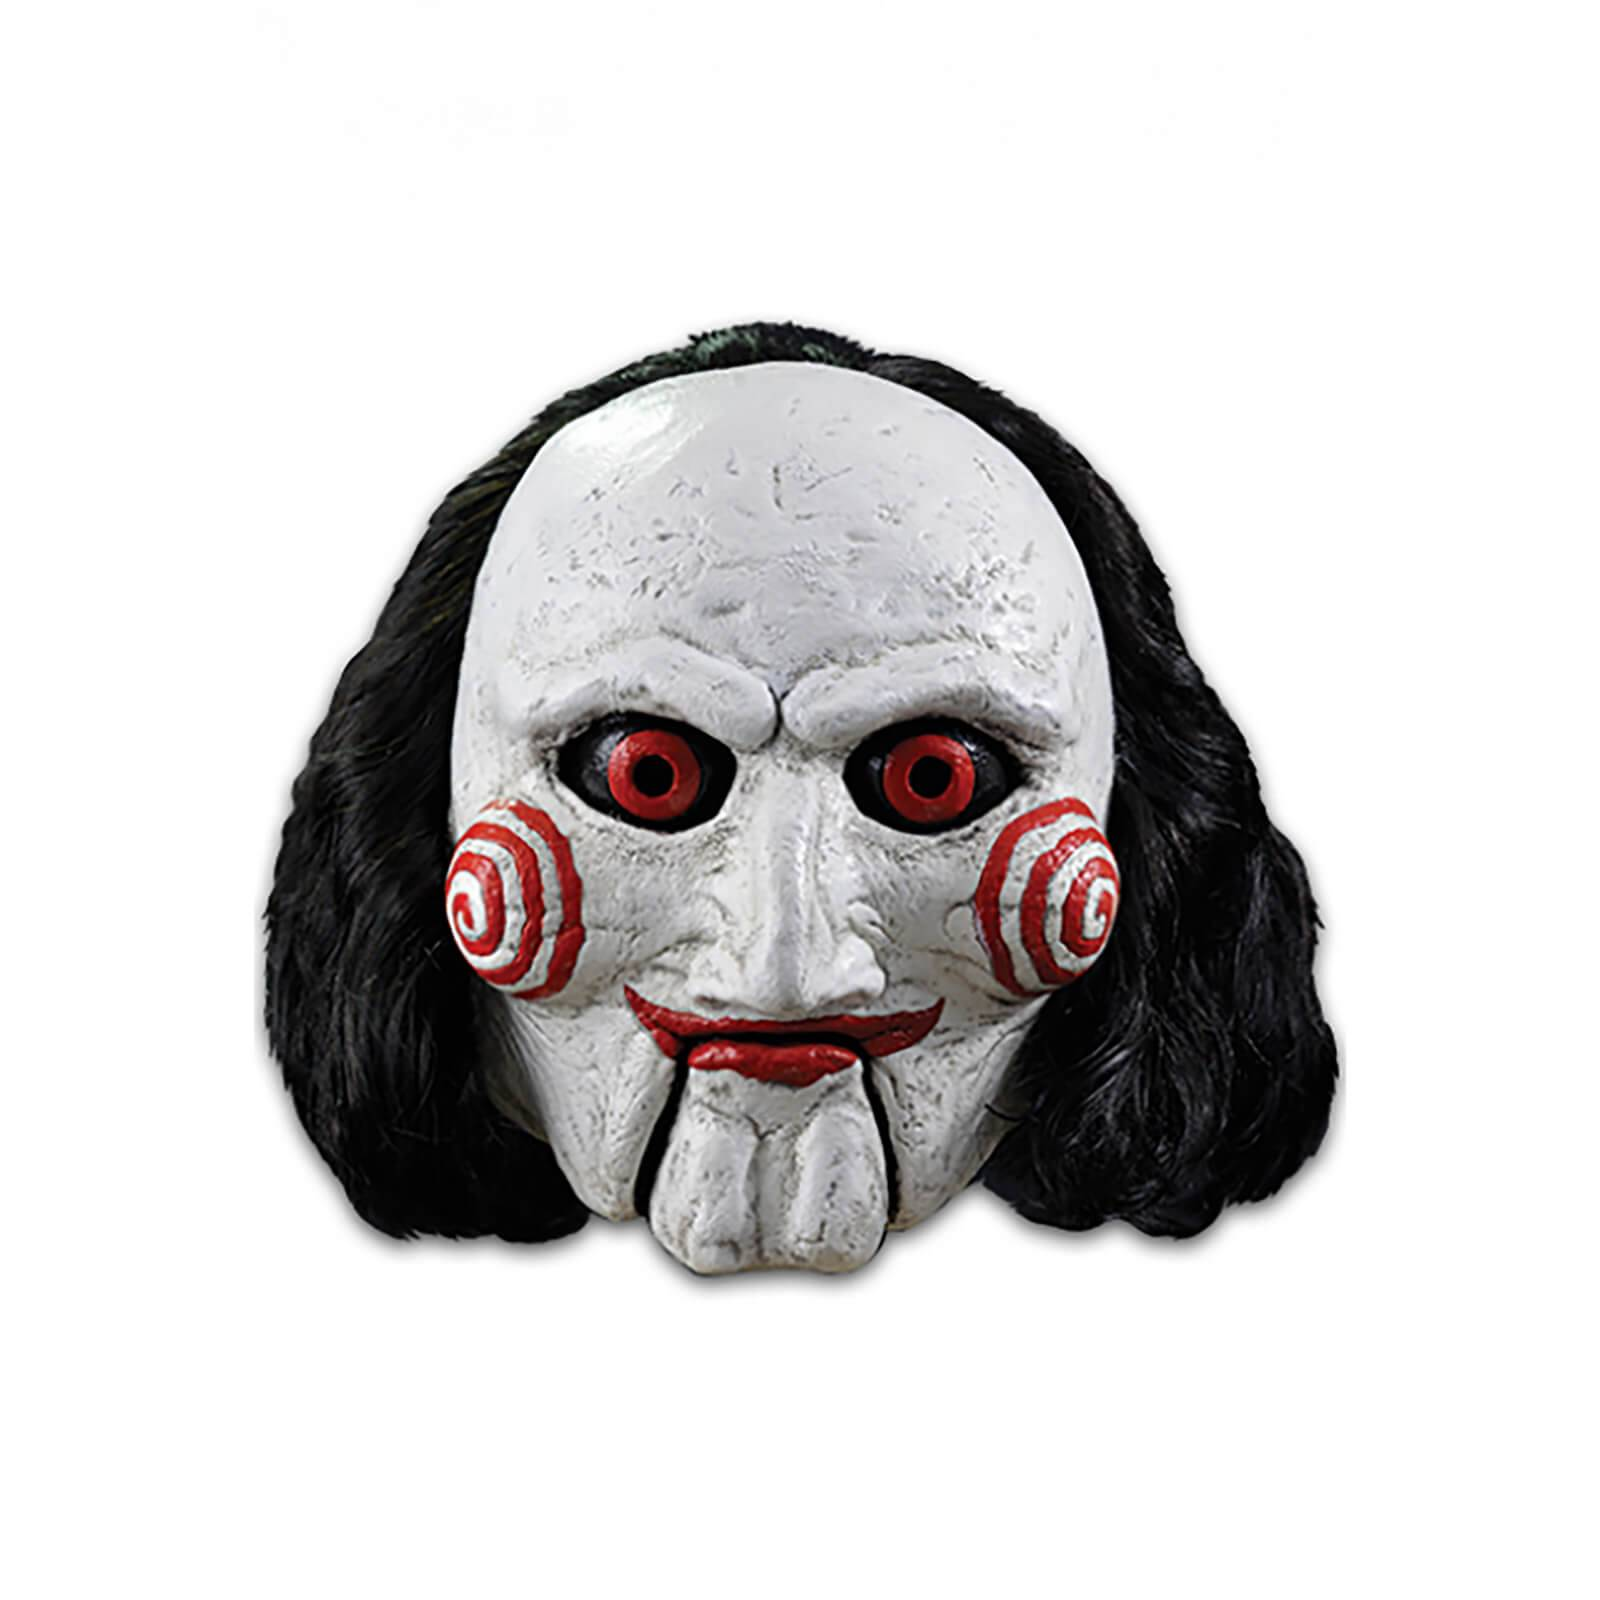 Trick Or Treat Saw: Billy Puppet Mask